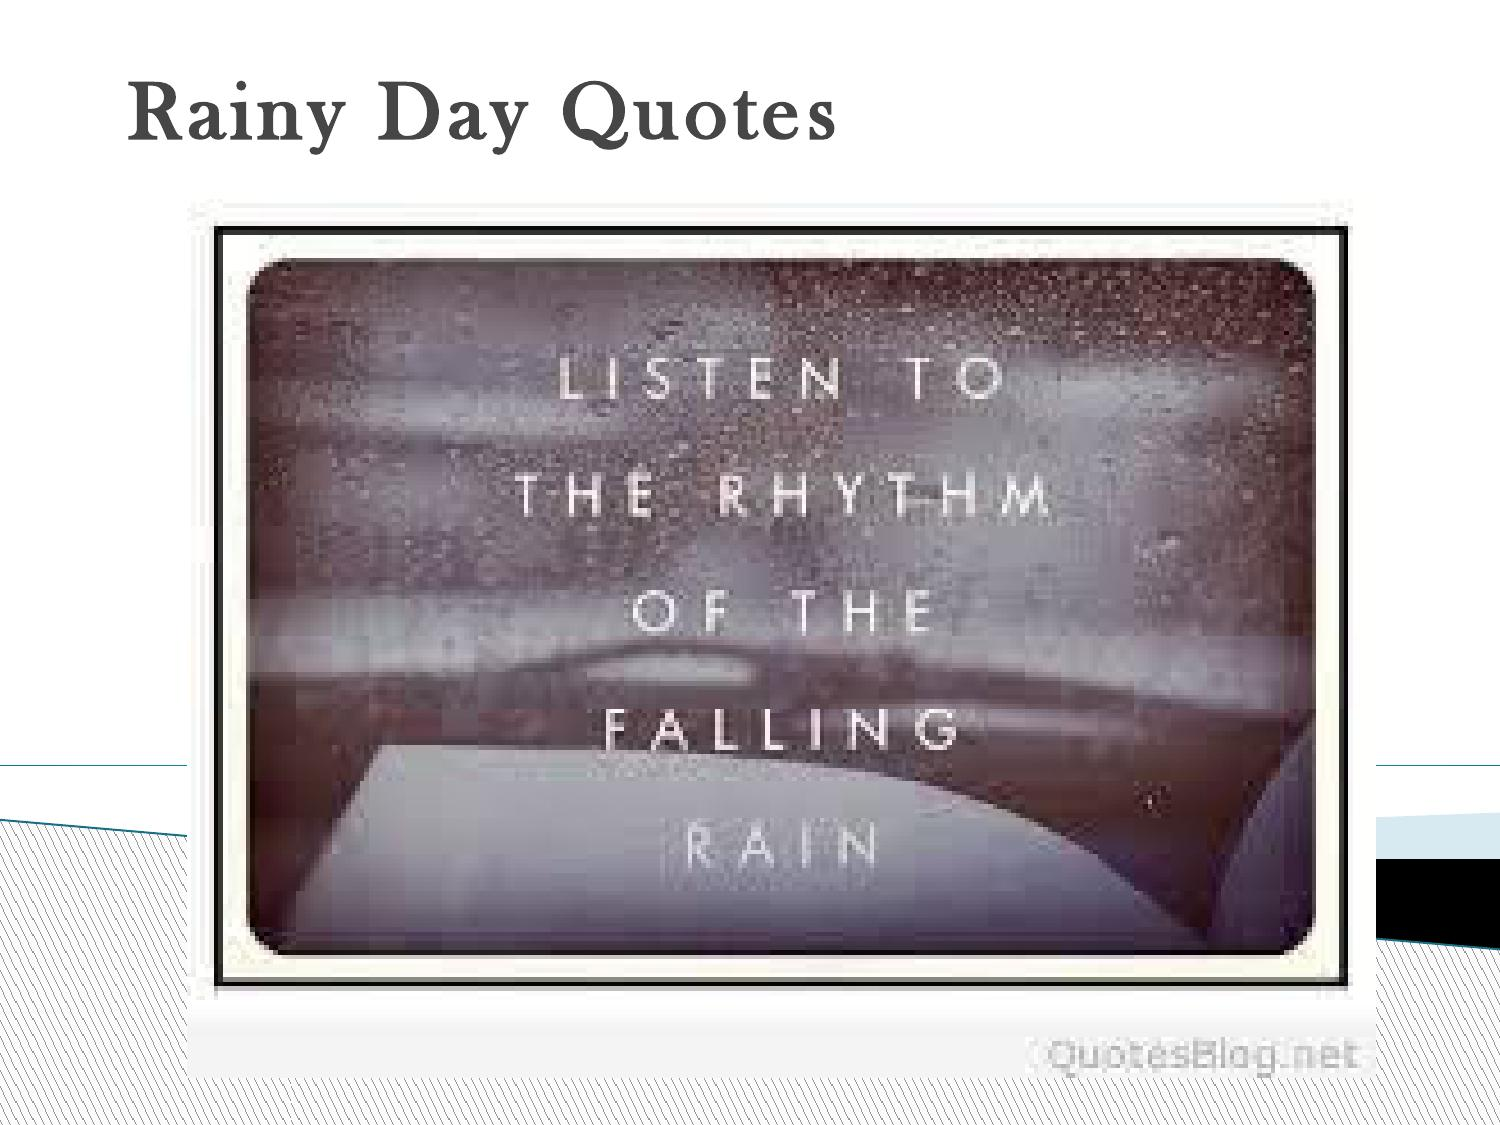 Rainy Day Quotes by Quoteshunter - issuu